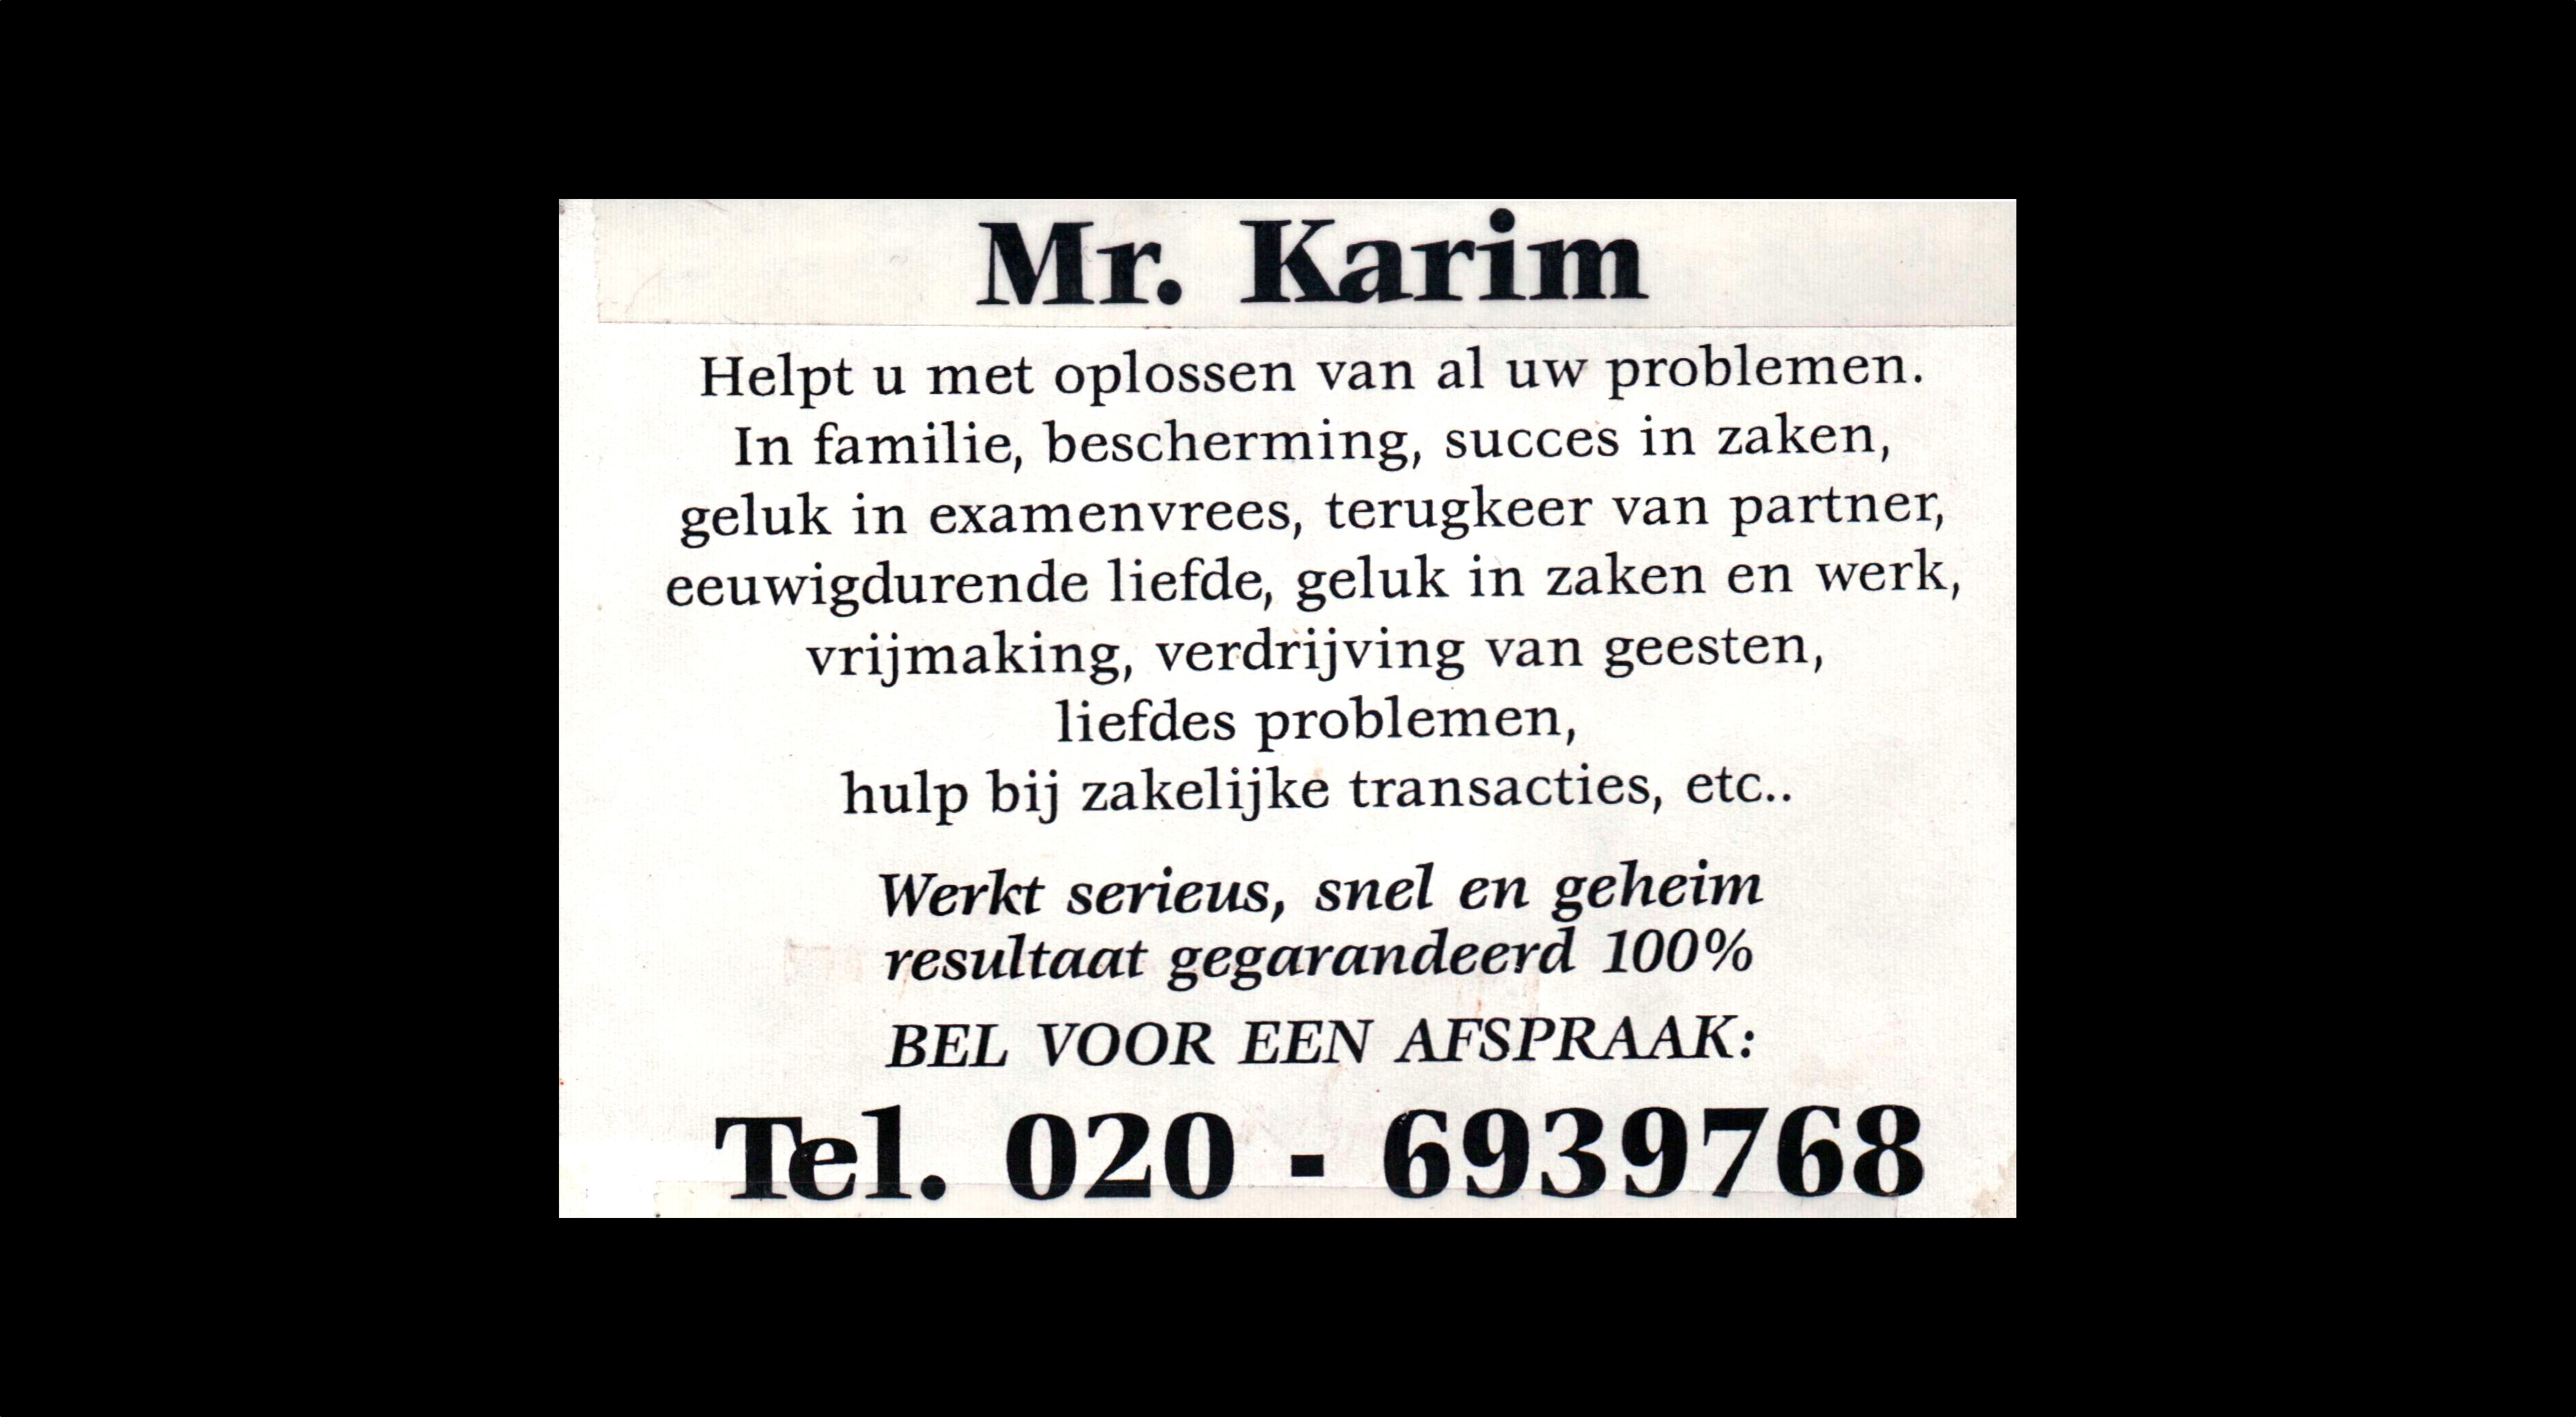 card of Mr. Karim